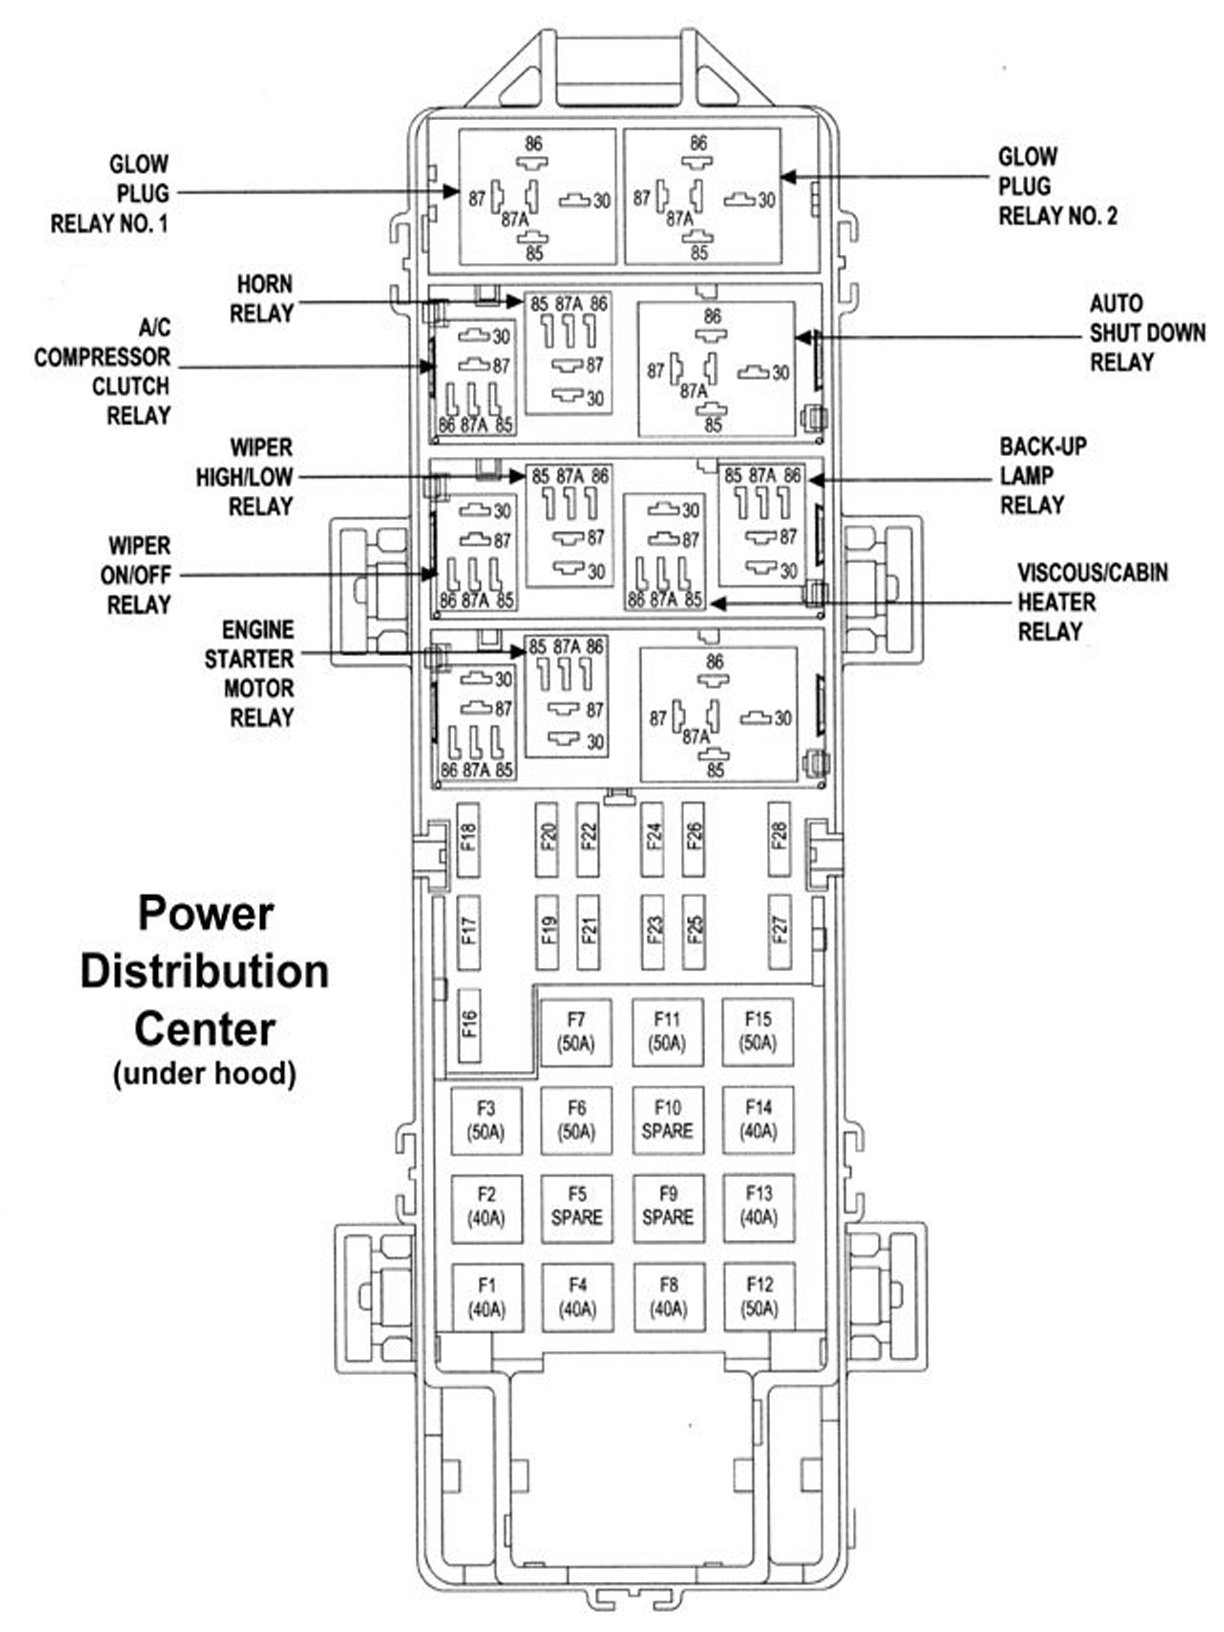 2004 Jeep Grand Cherokee Wiring Diagram Power Windows from 2020cadillac.com